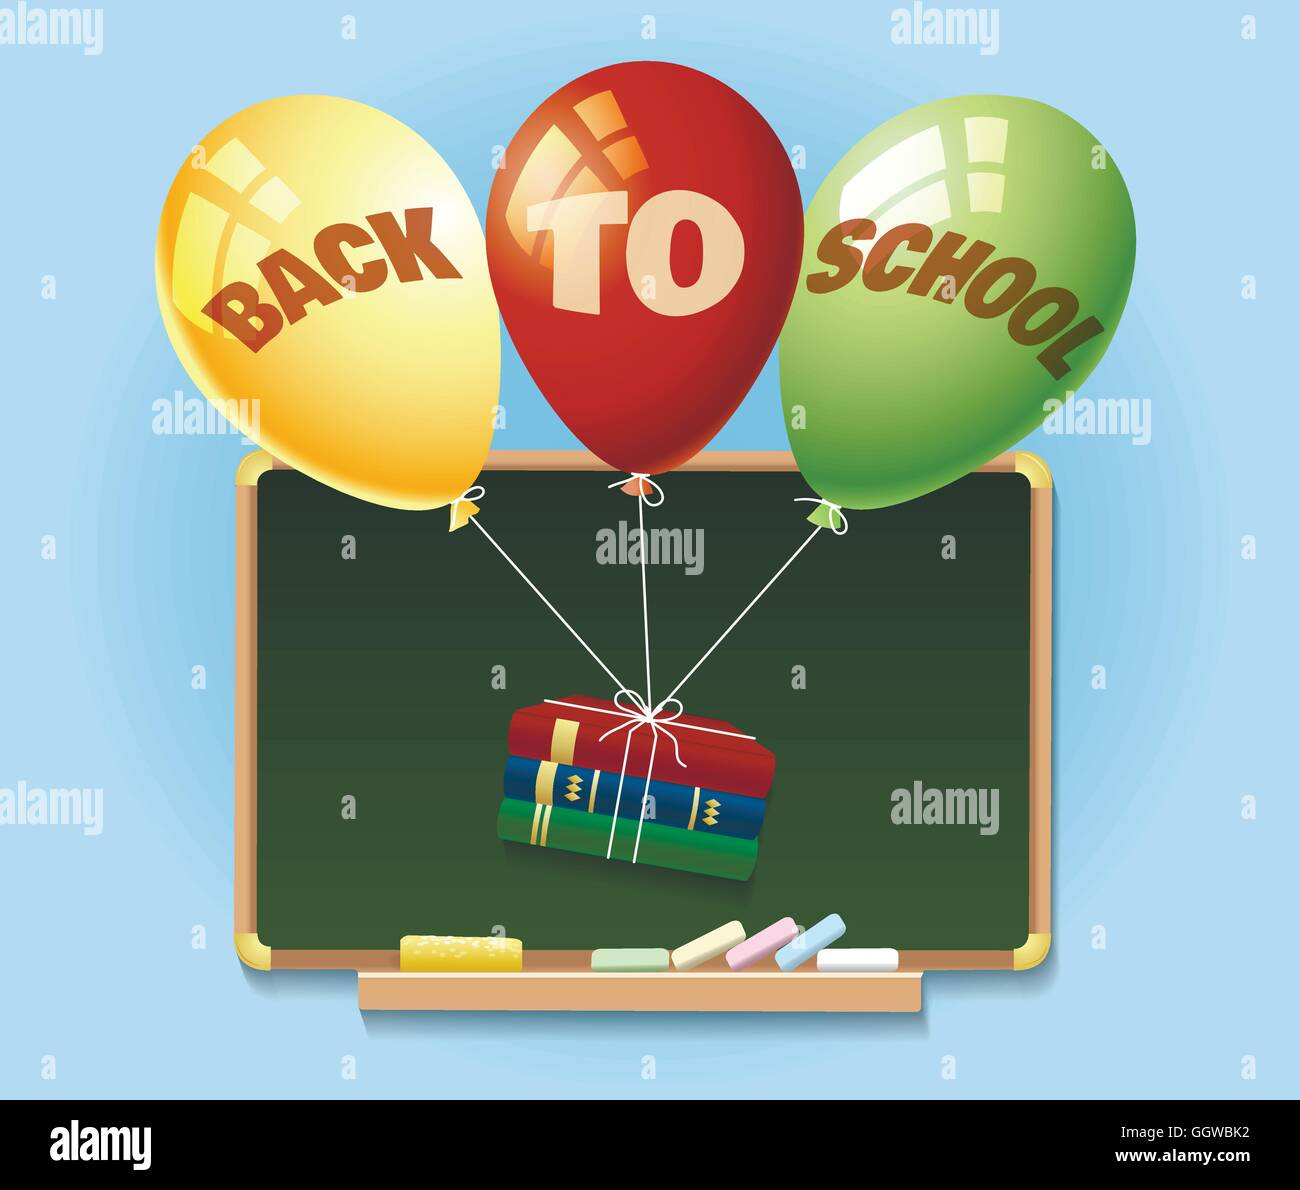 Back to school illustration with chalkboard and balloons with books. - Stock Image